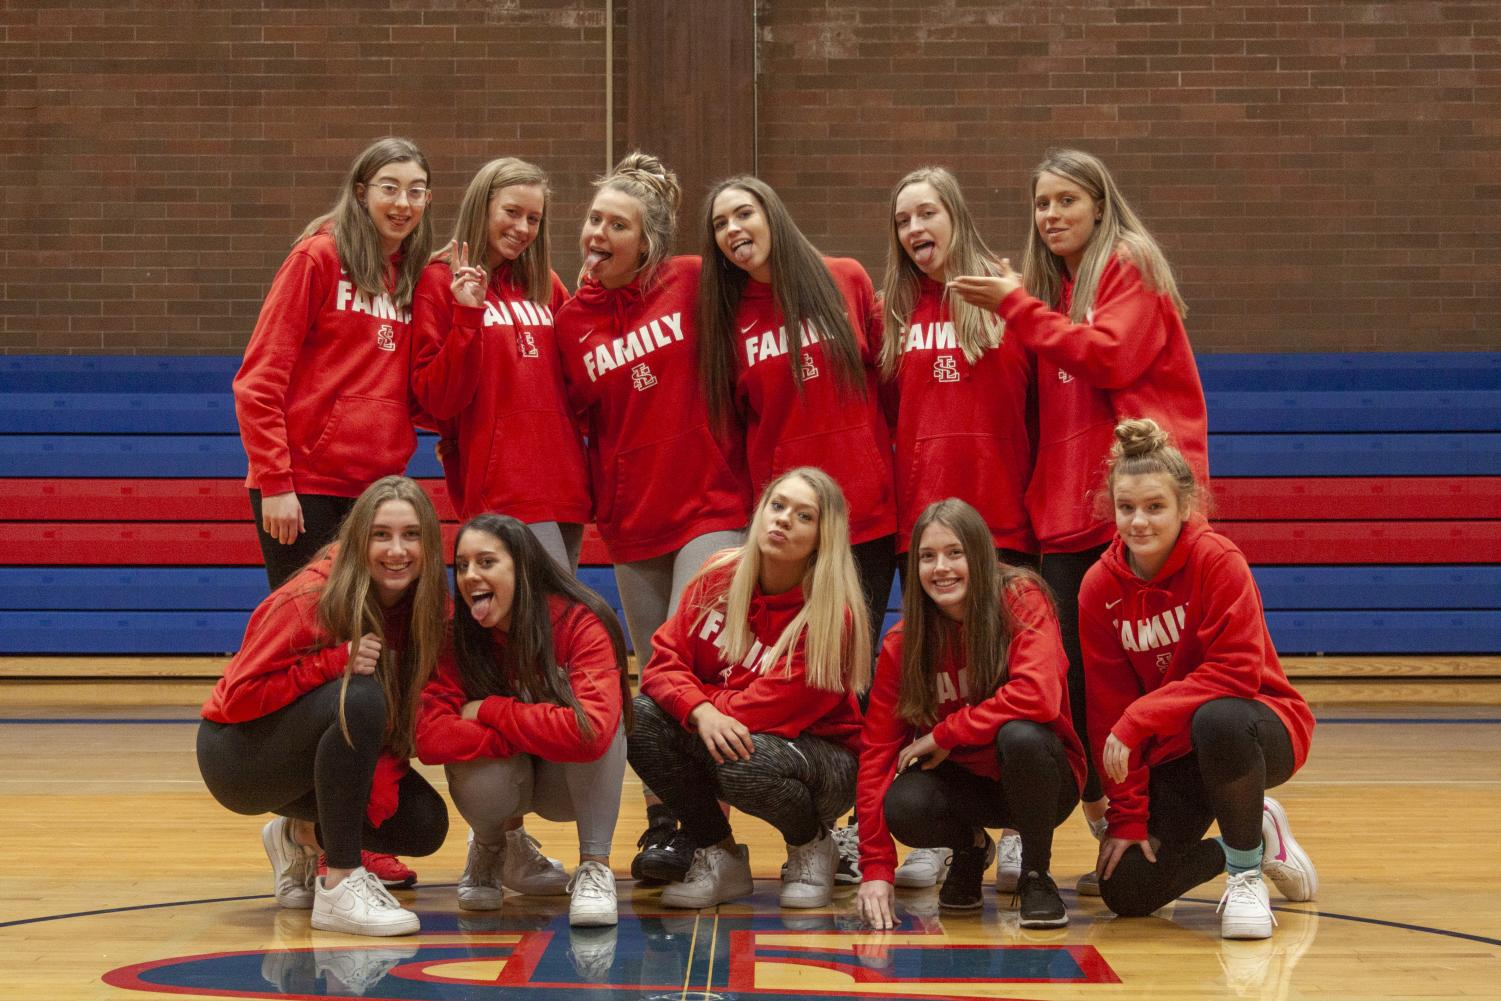 The+varsity+girls+basketball+team+has+an+overall+record+of+24-0-3.